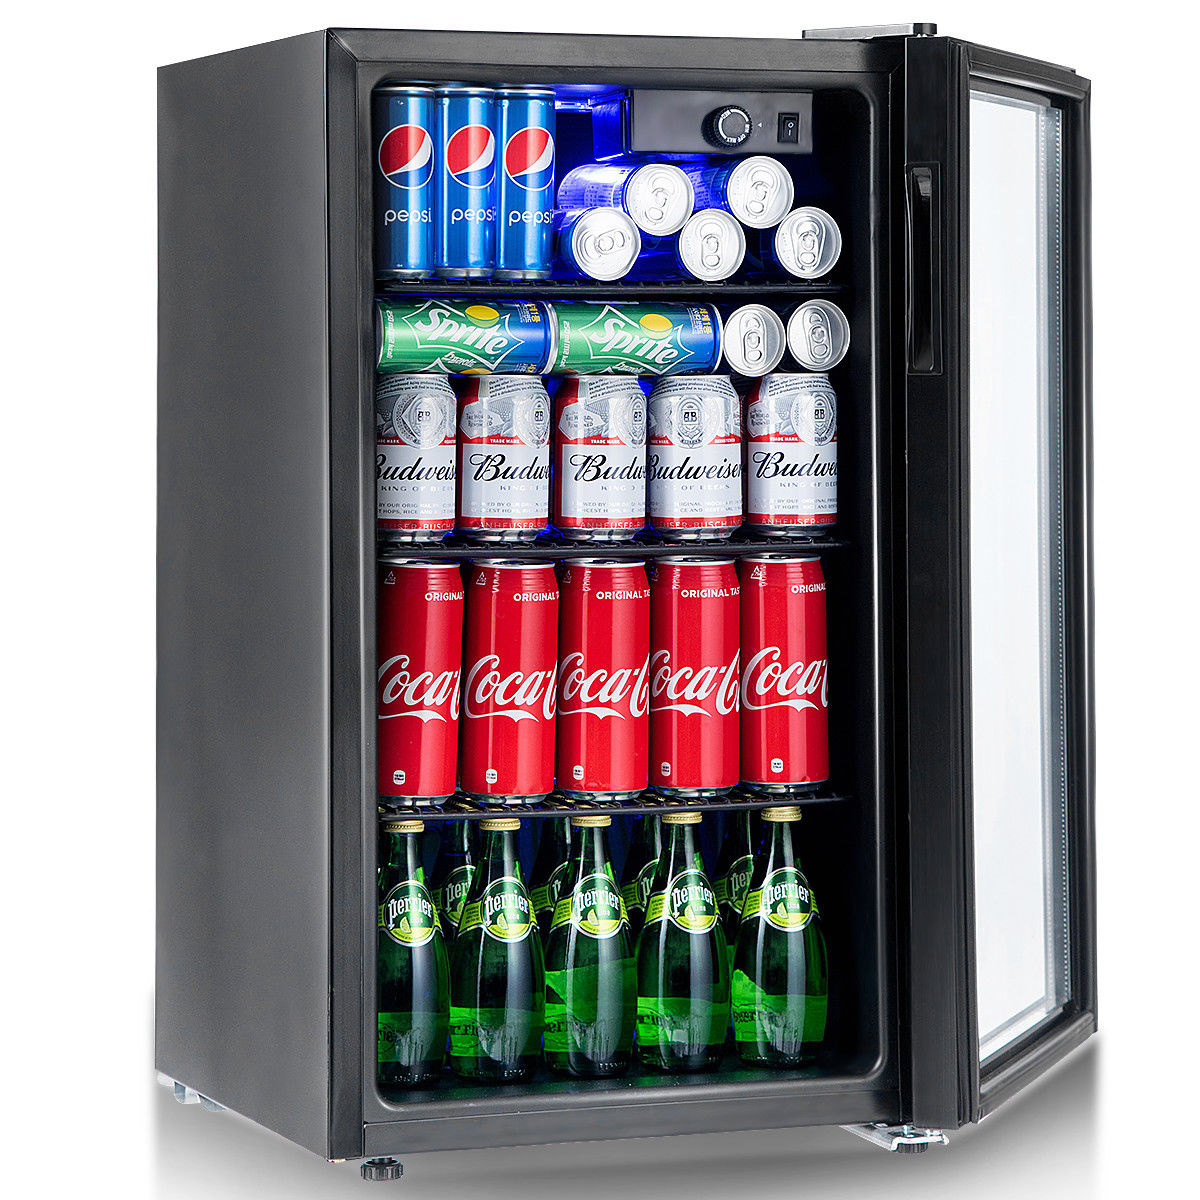 Gymax 120 Can Beverage Refrigerator Beer Wine Soda Drink Cooler Mini